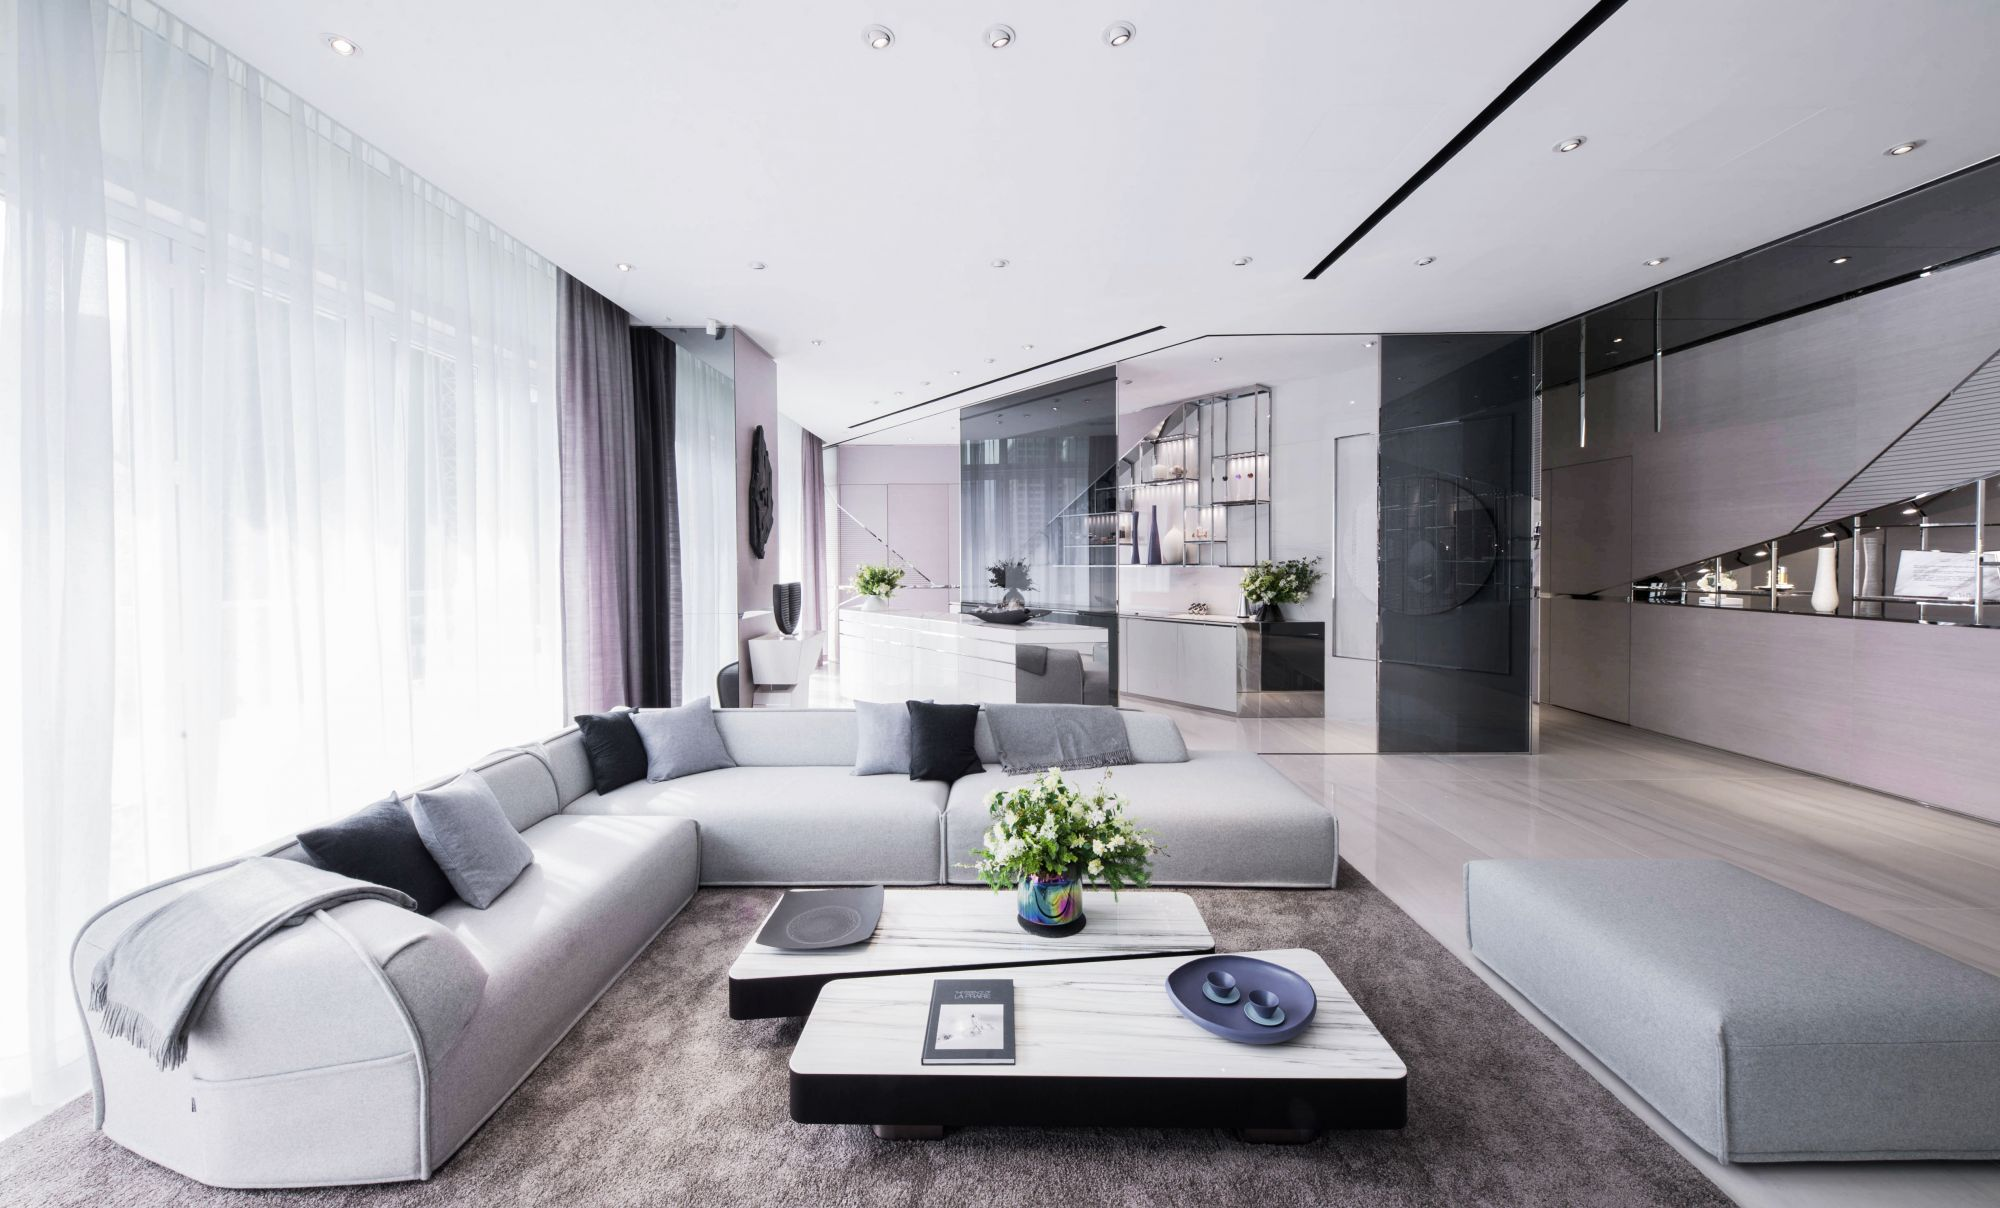 La Prairie Opens A Soothingly Swiss Brand Residence In H Queen's, Central